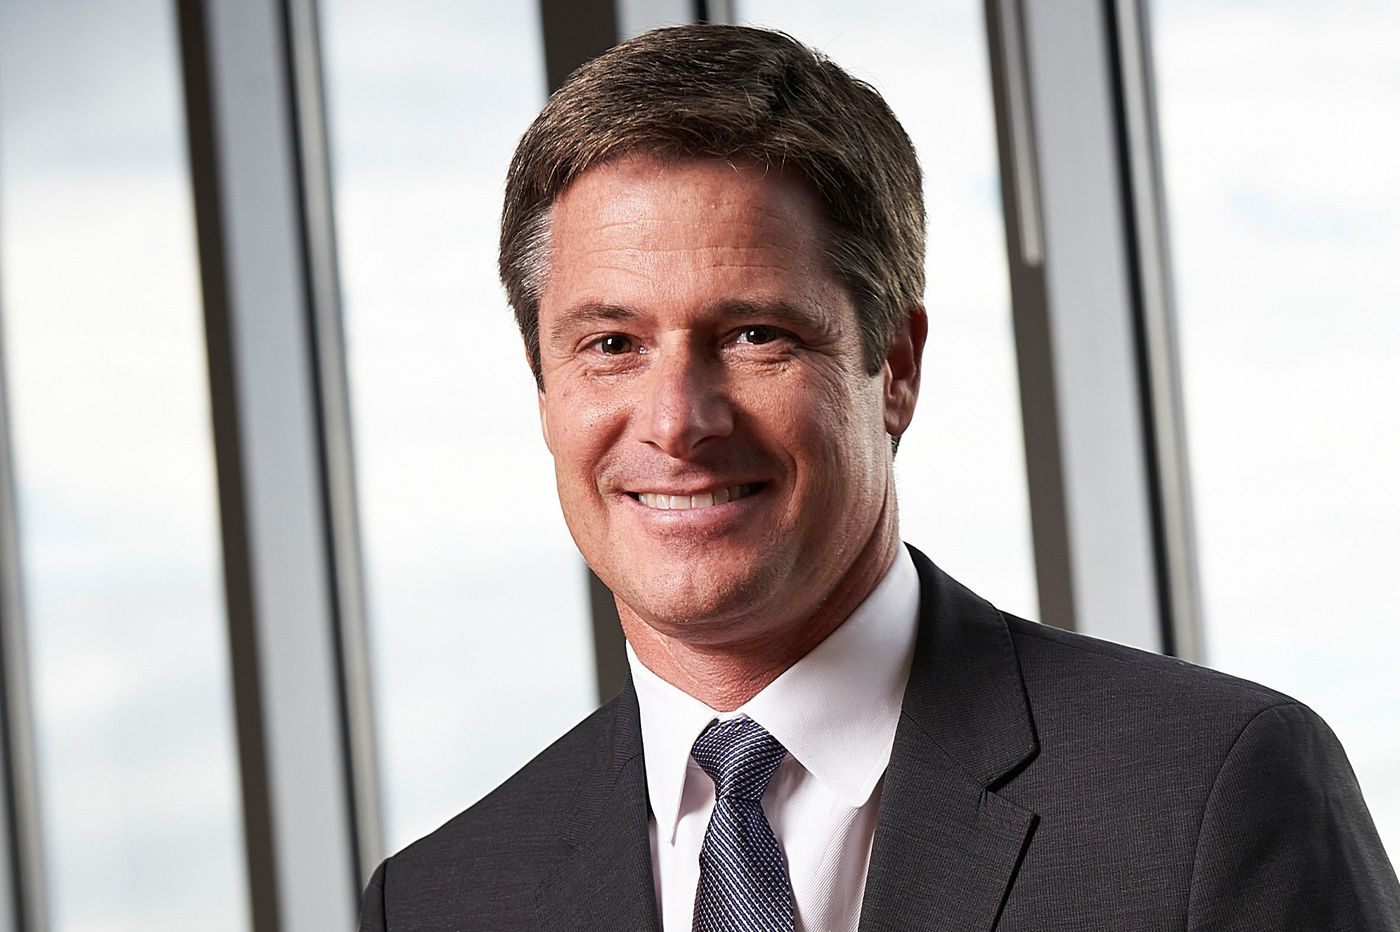 Aramark names new CFO, who has a long track record at key competitor